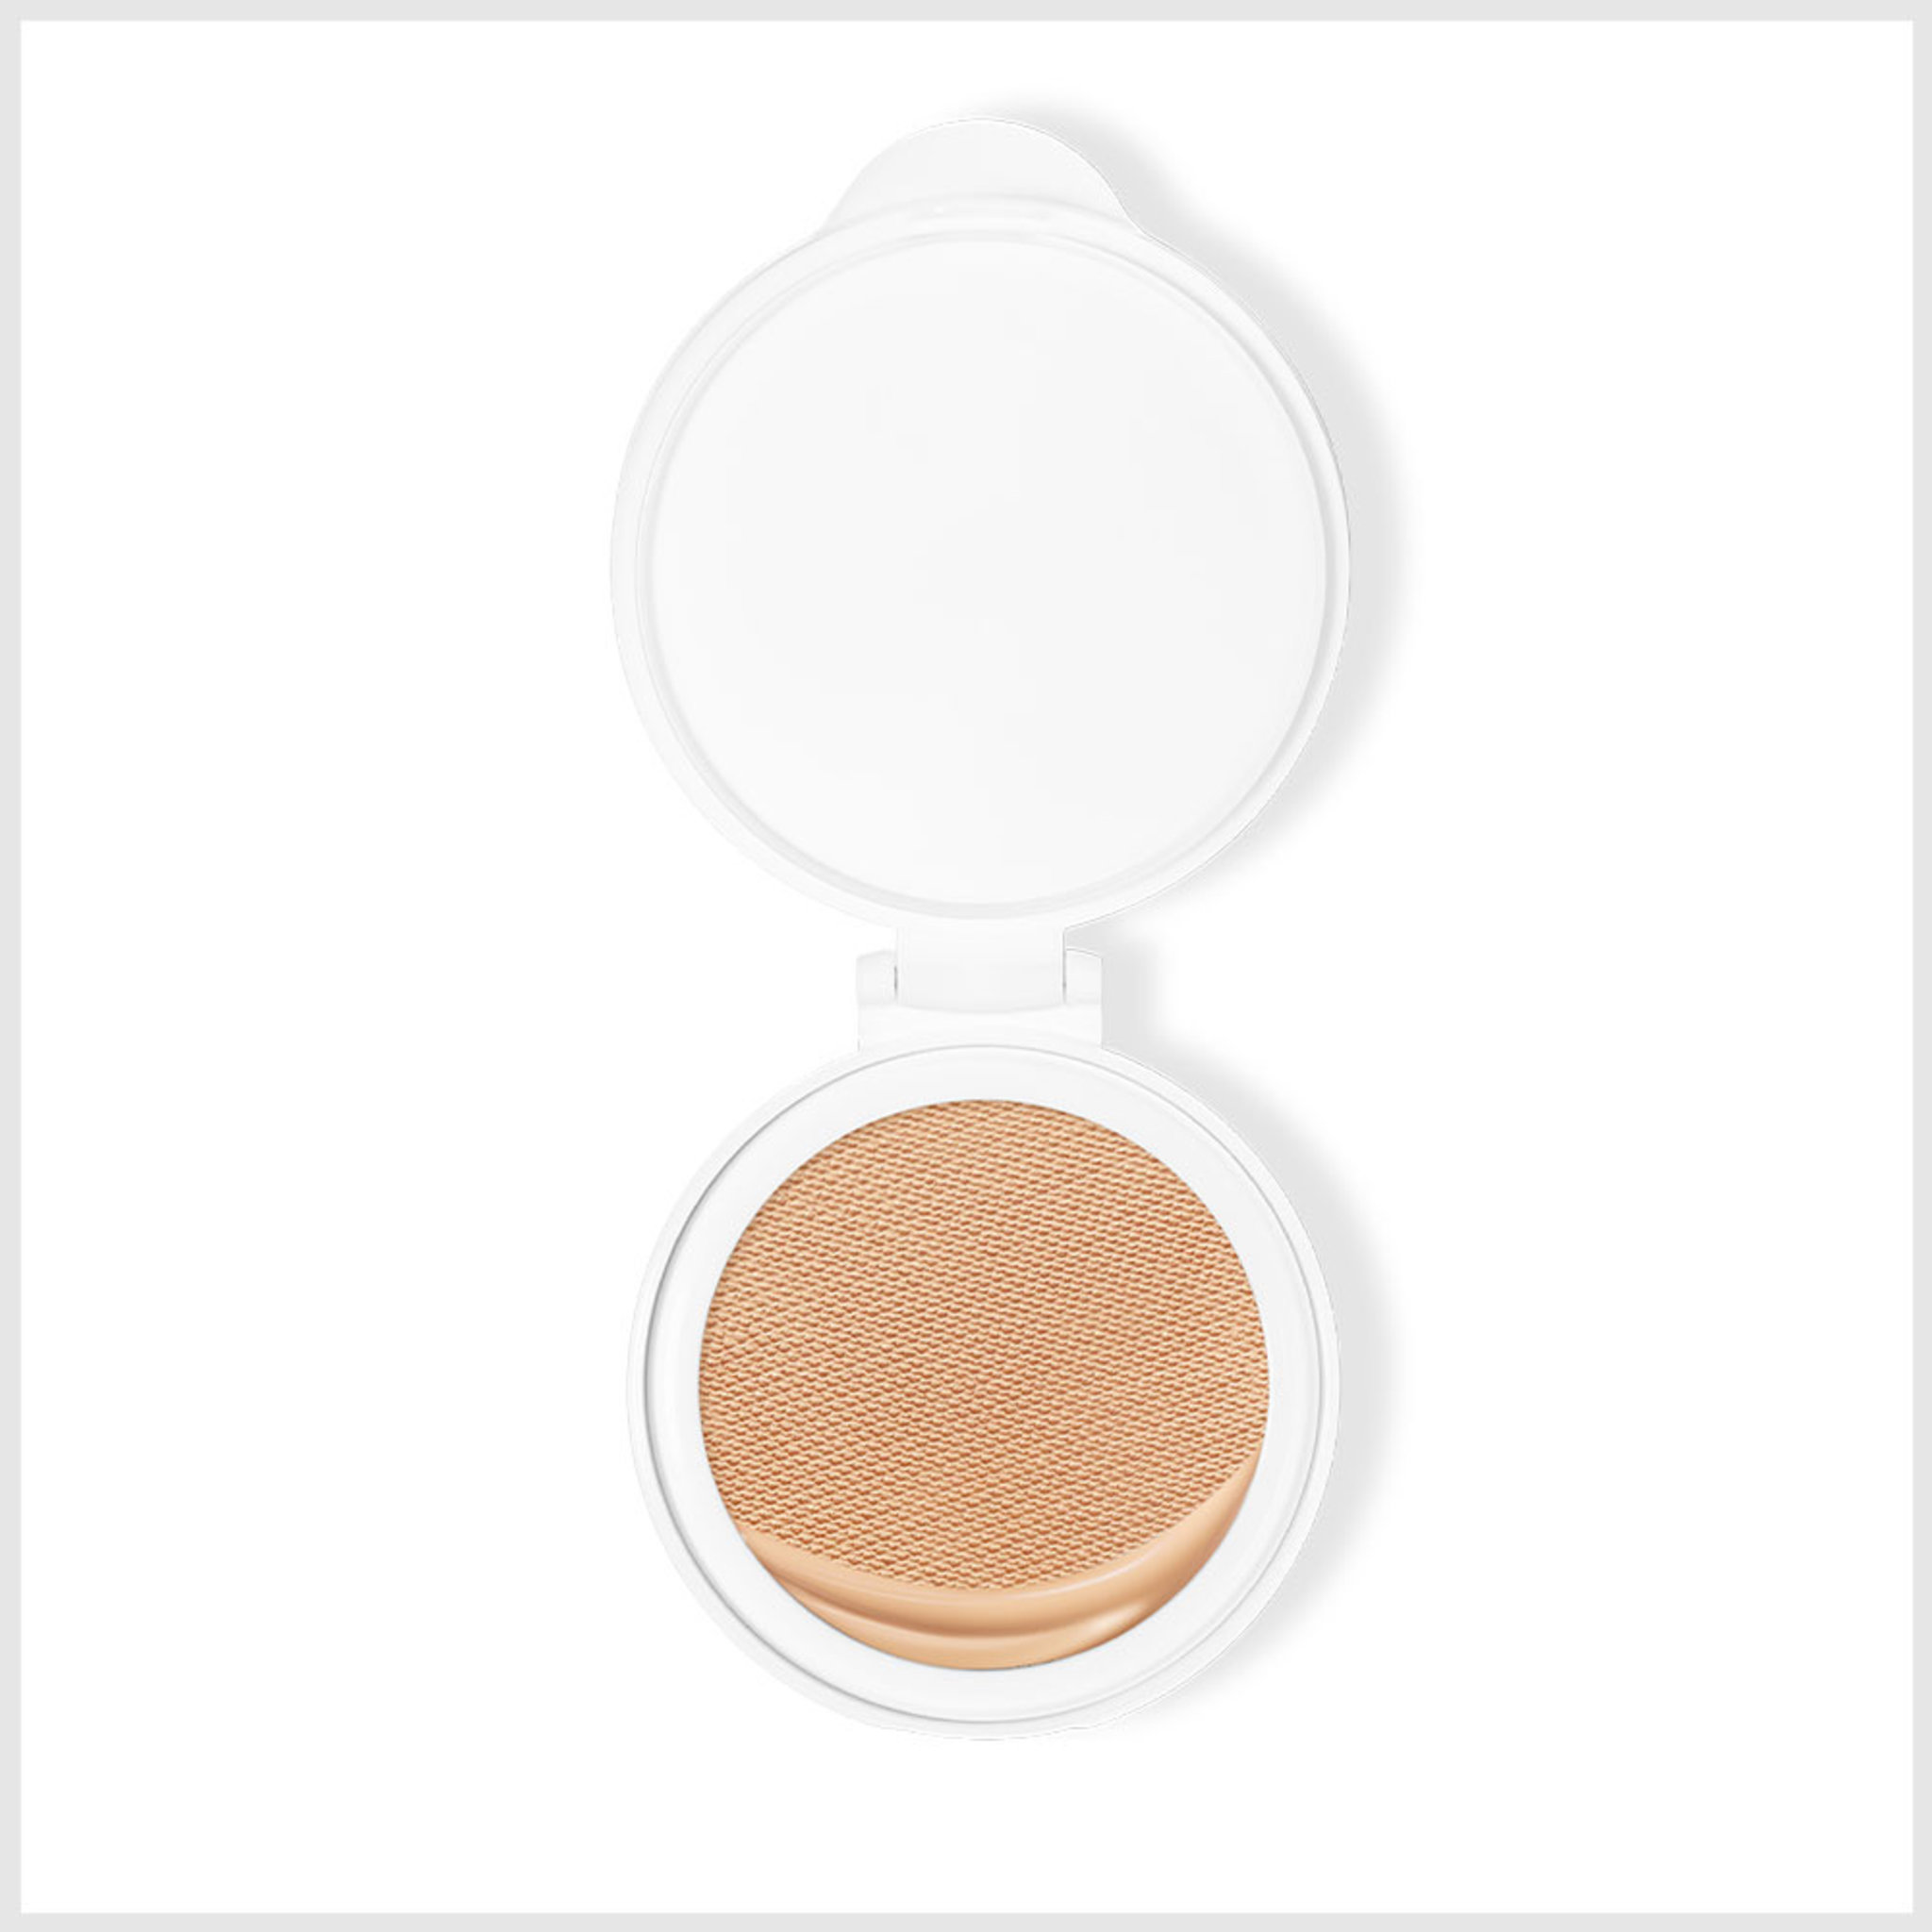 Dior Prestige Light-In-WhiteThe Mineral UV ProtectorBlemish Balm Compact SPF 50+ PA+++Refill, 12 G